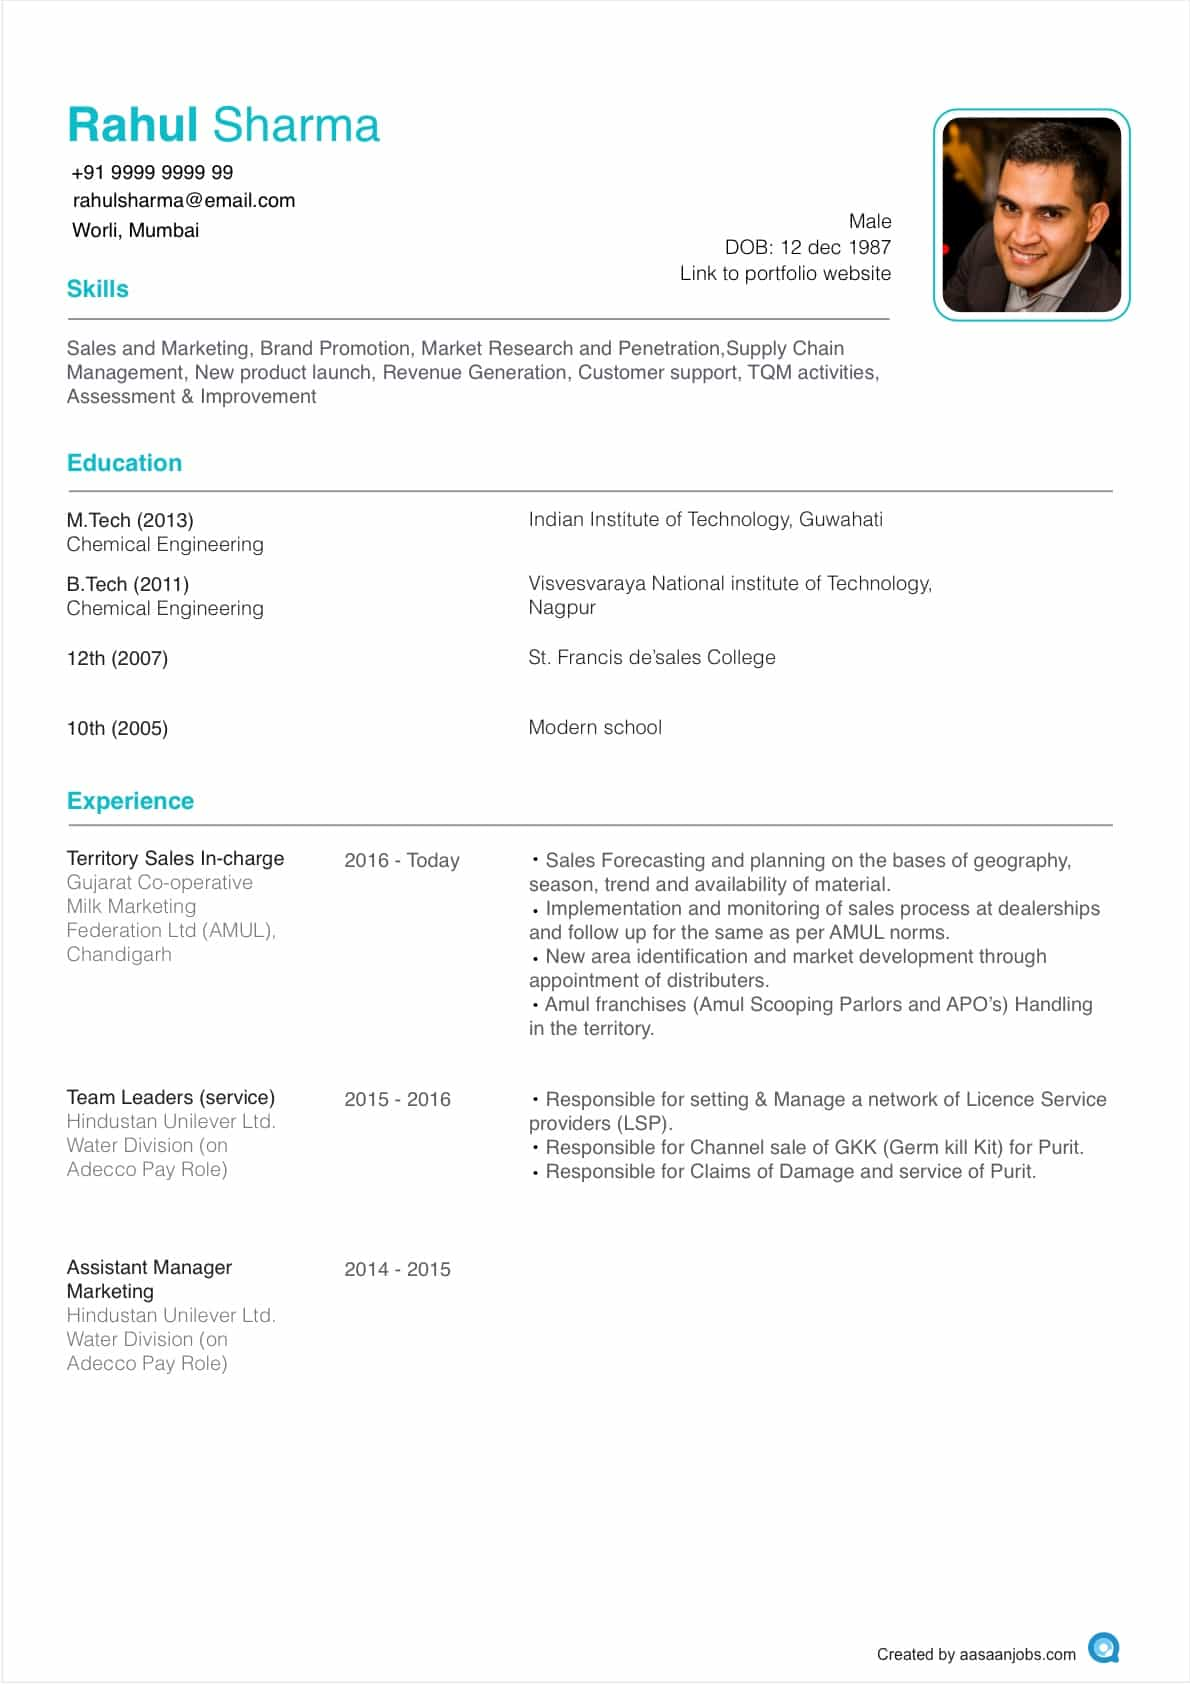 Wonderful Subtle Subtle Resume Format  Resume Formatter